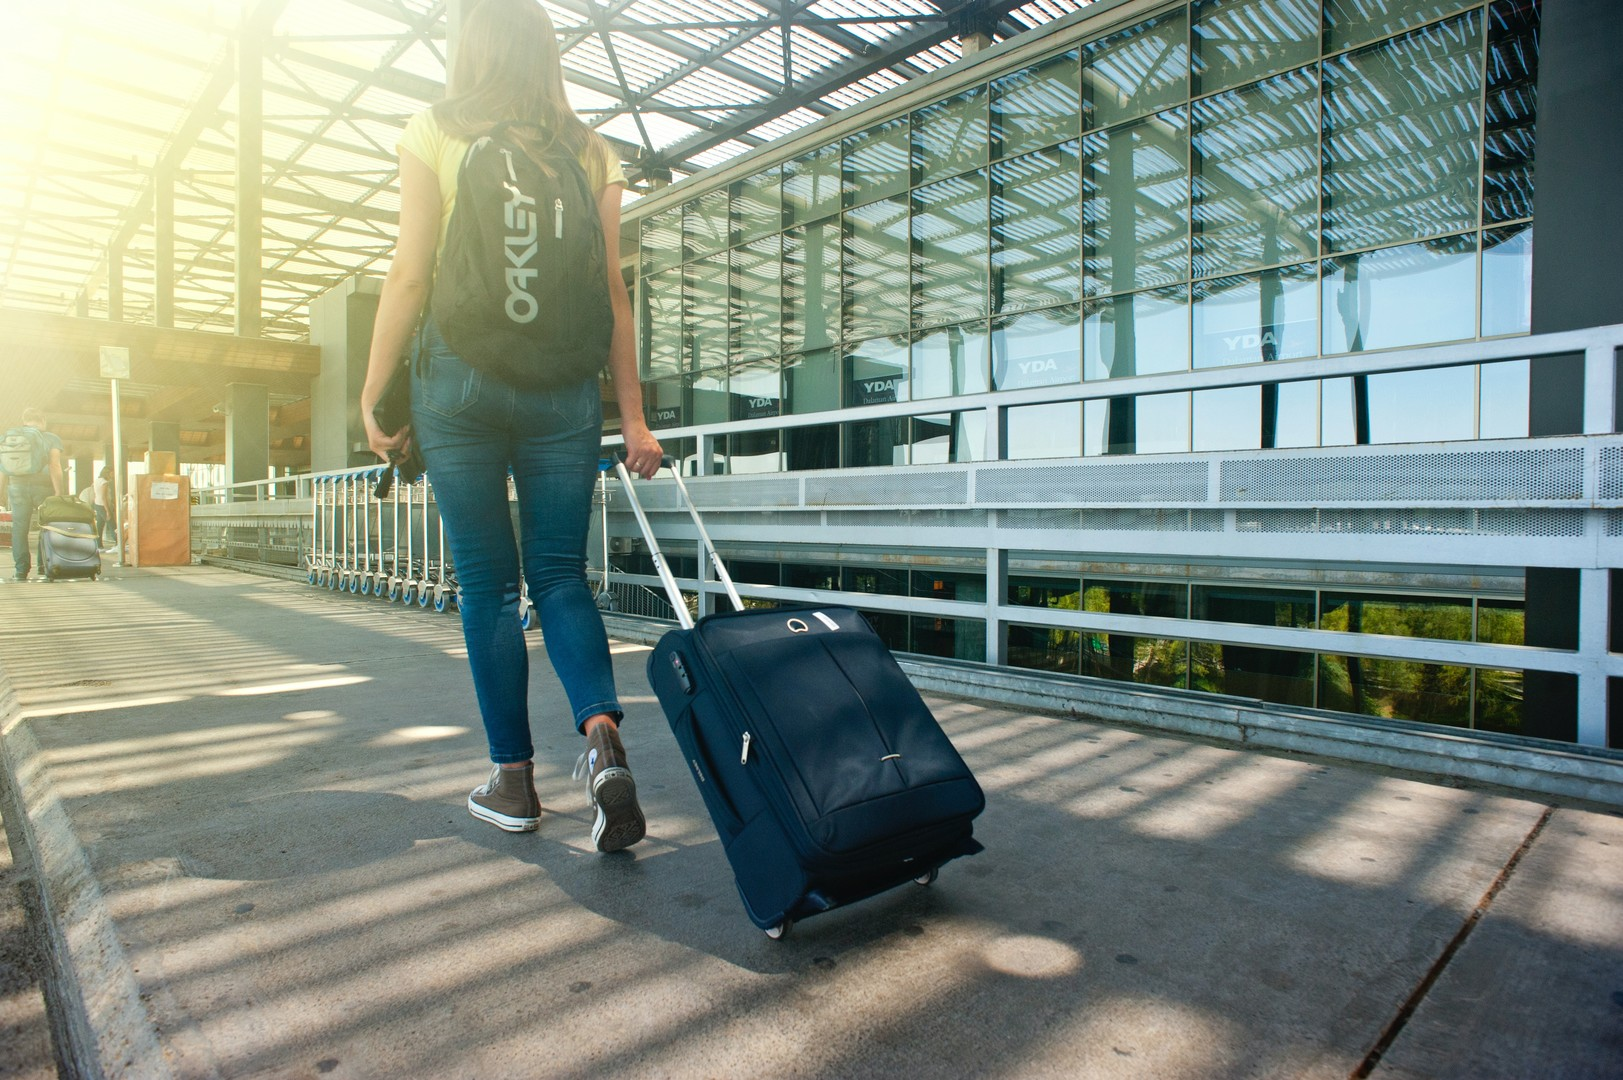 Is a backpack or a suitcase better for traveling?